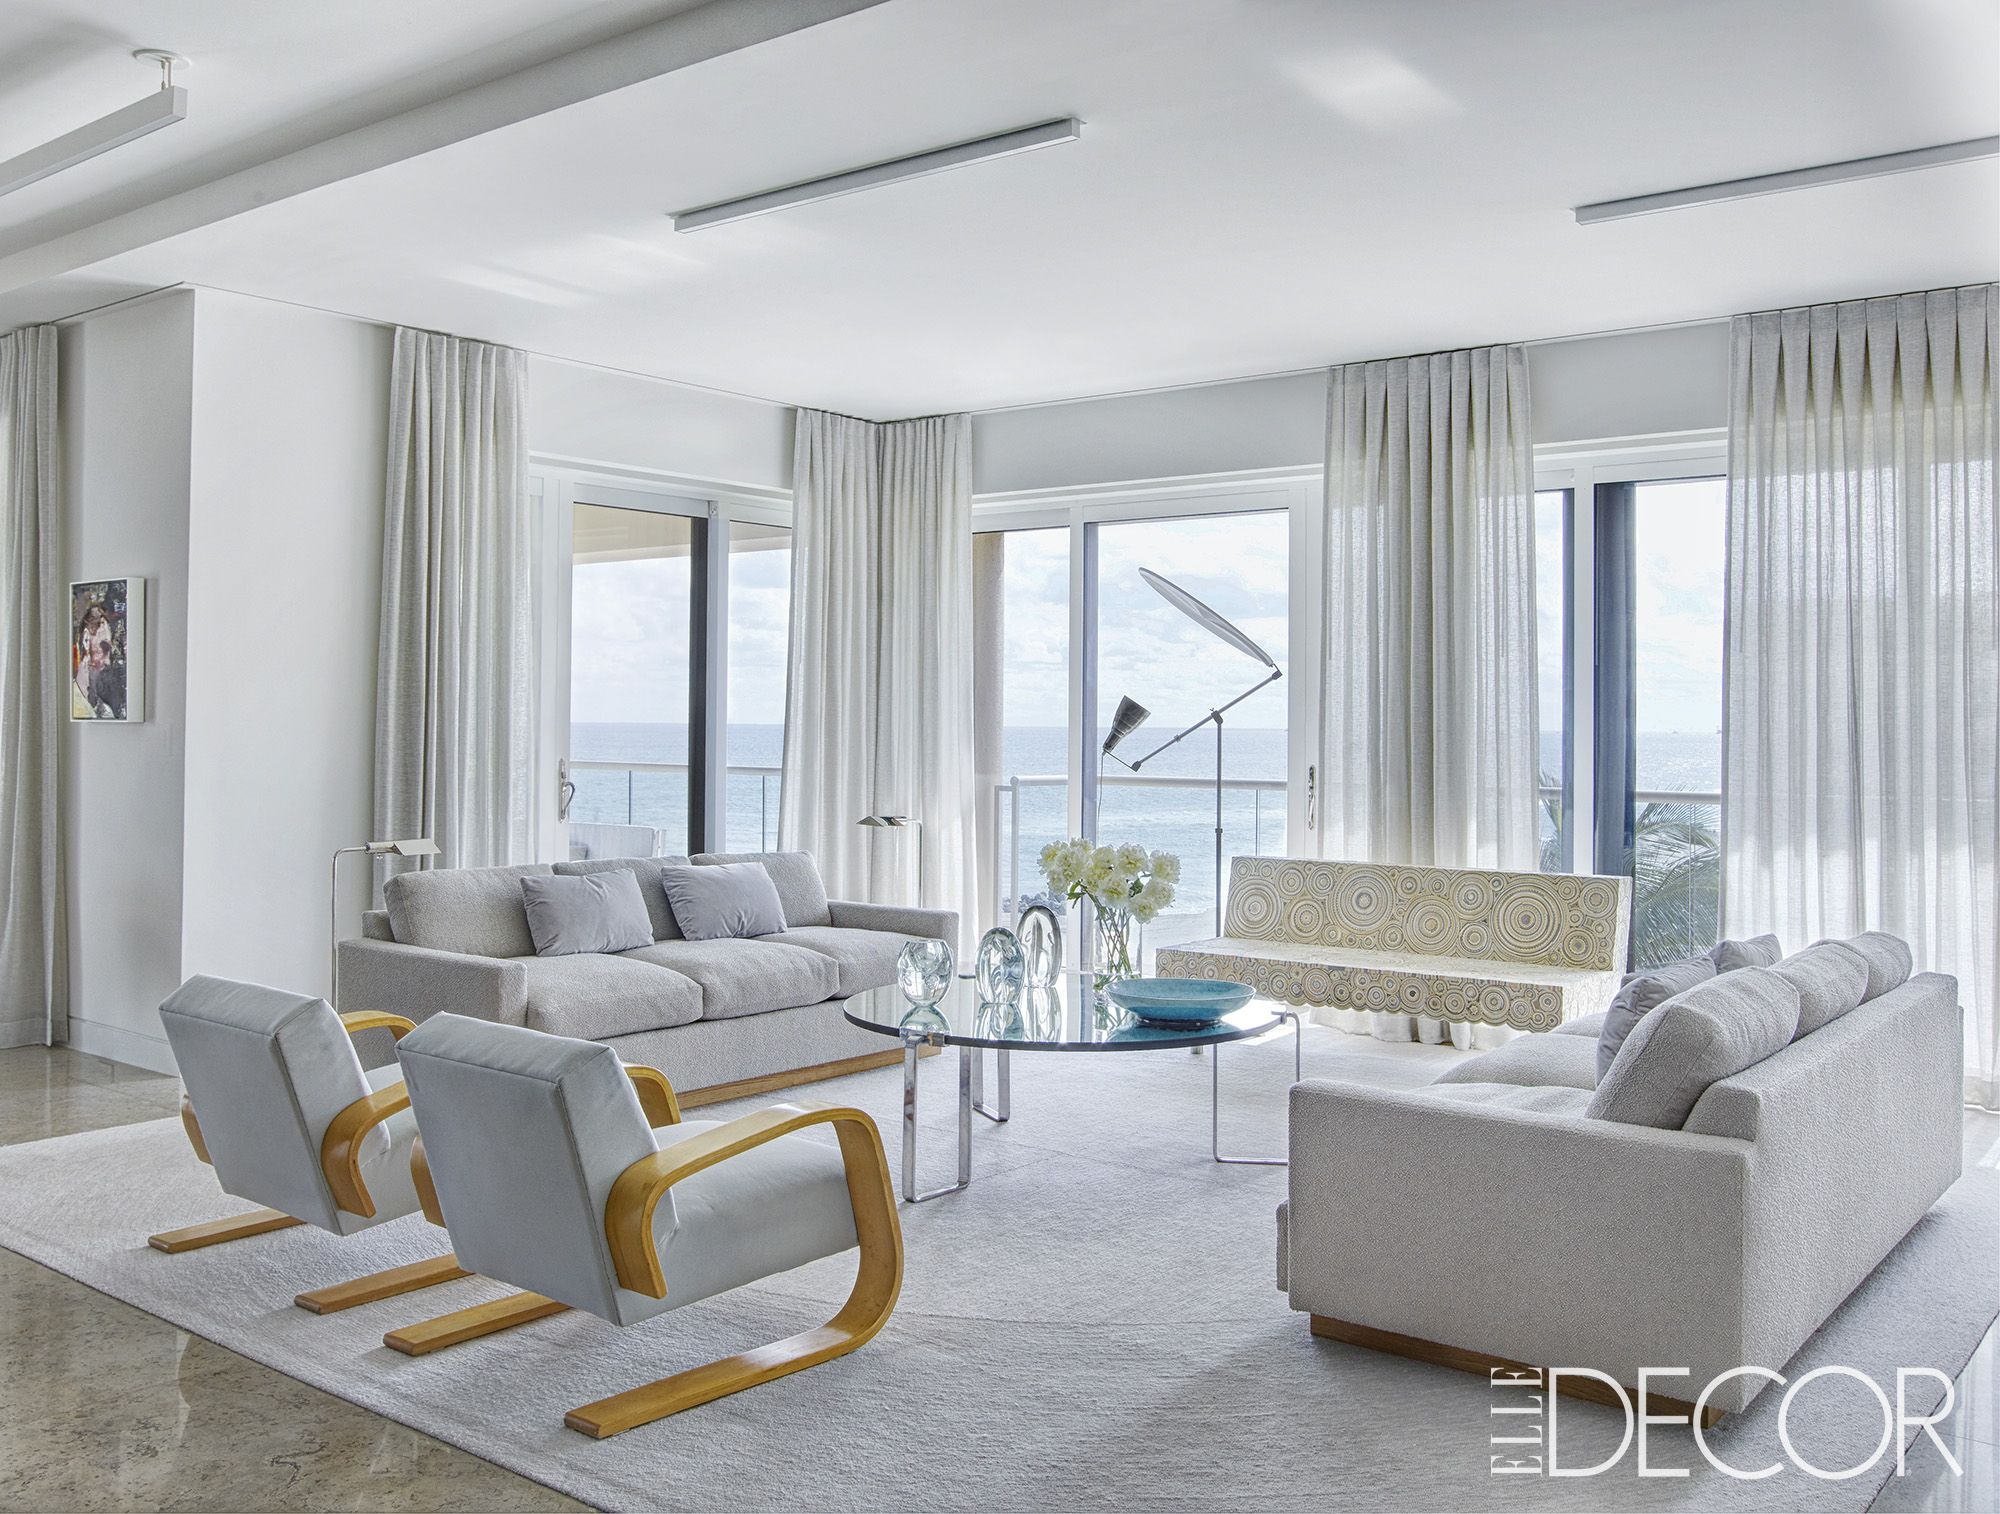 Exceptional Elle Decor Photo Gallery